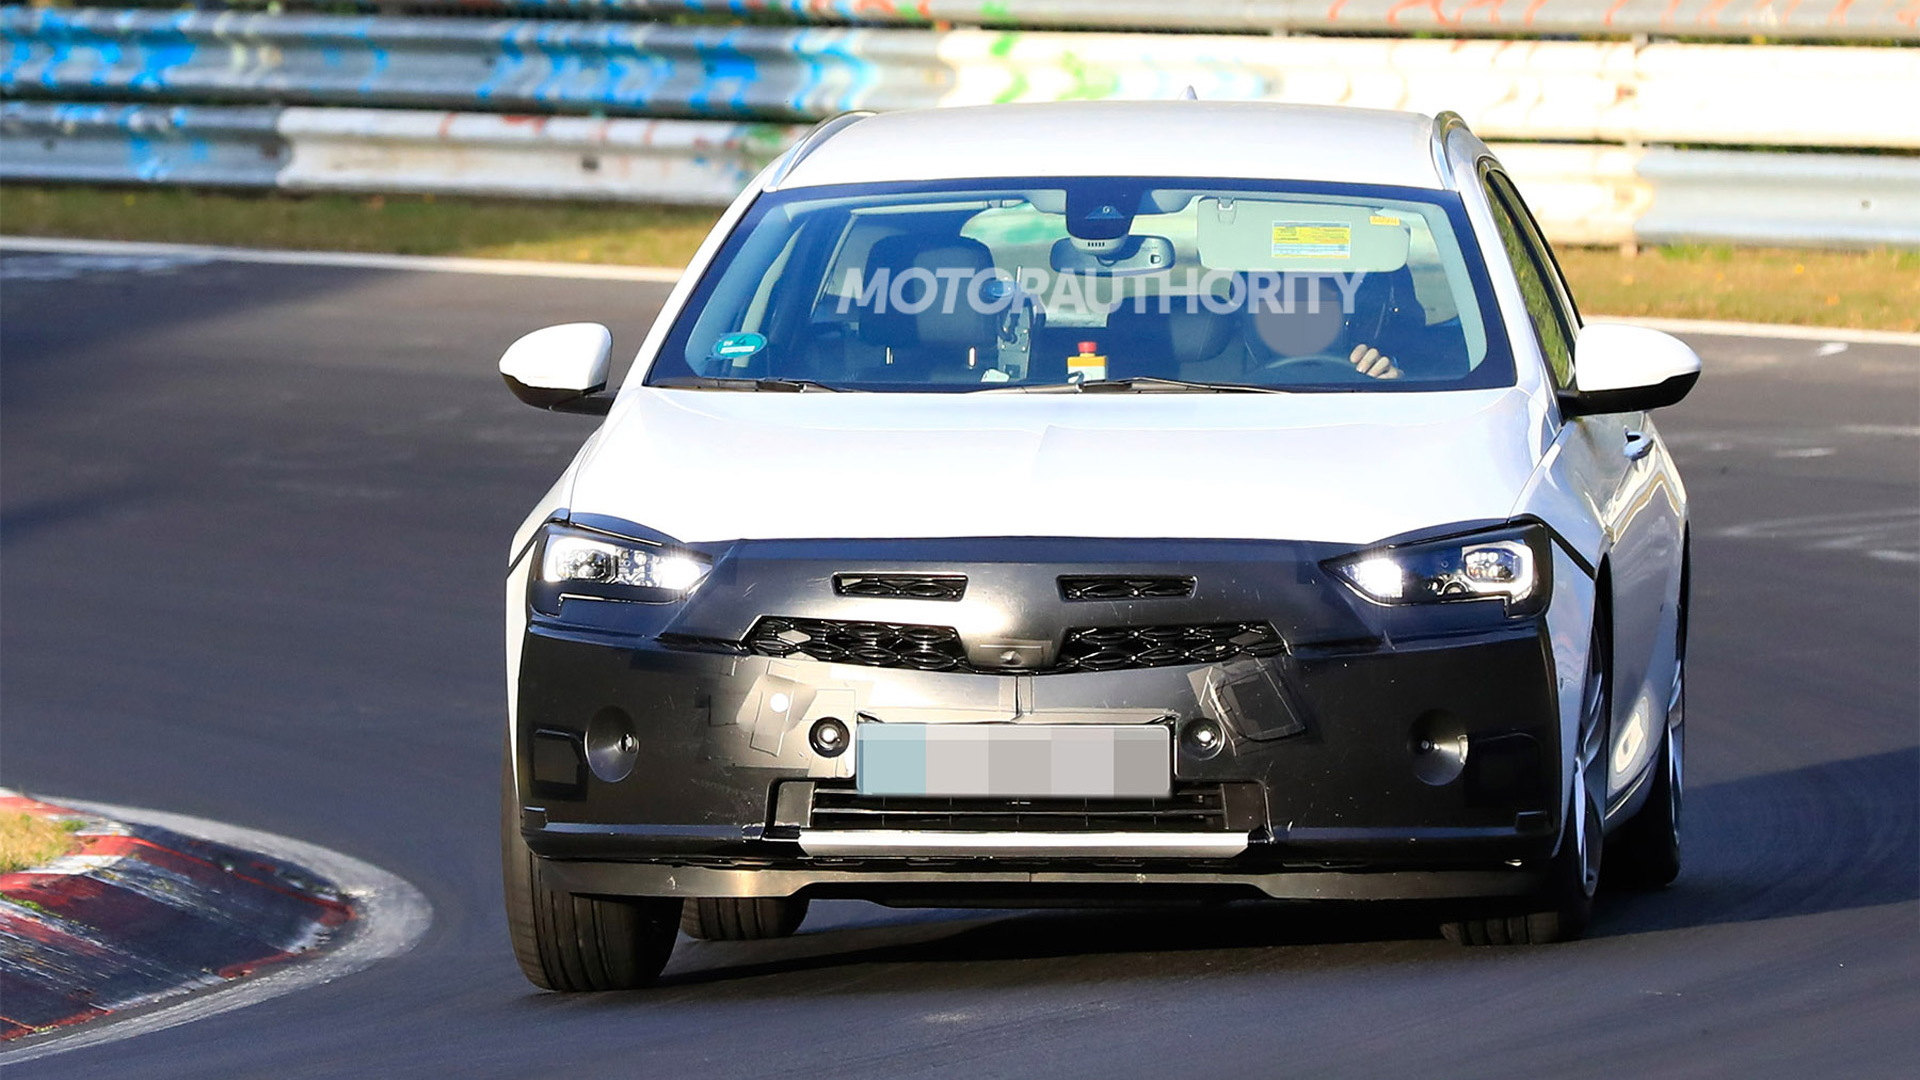 2020 Opel Insignia Sports Tourer facelift spy shots - Image via S. Baldauf/SB-Medien